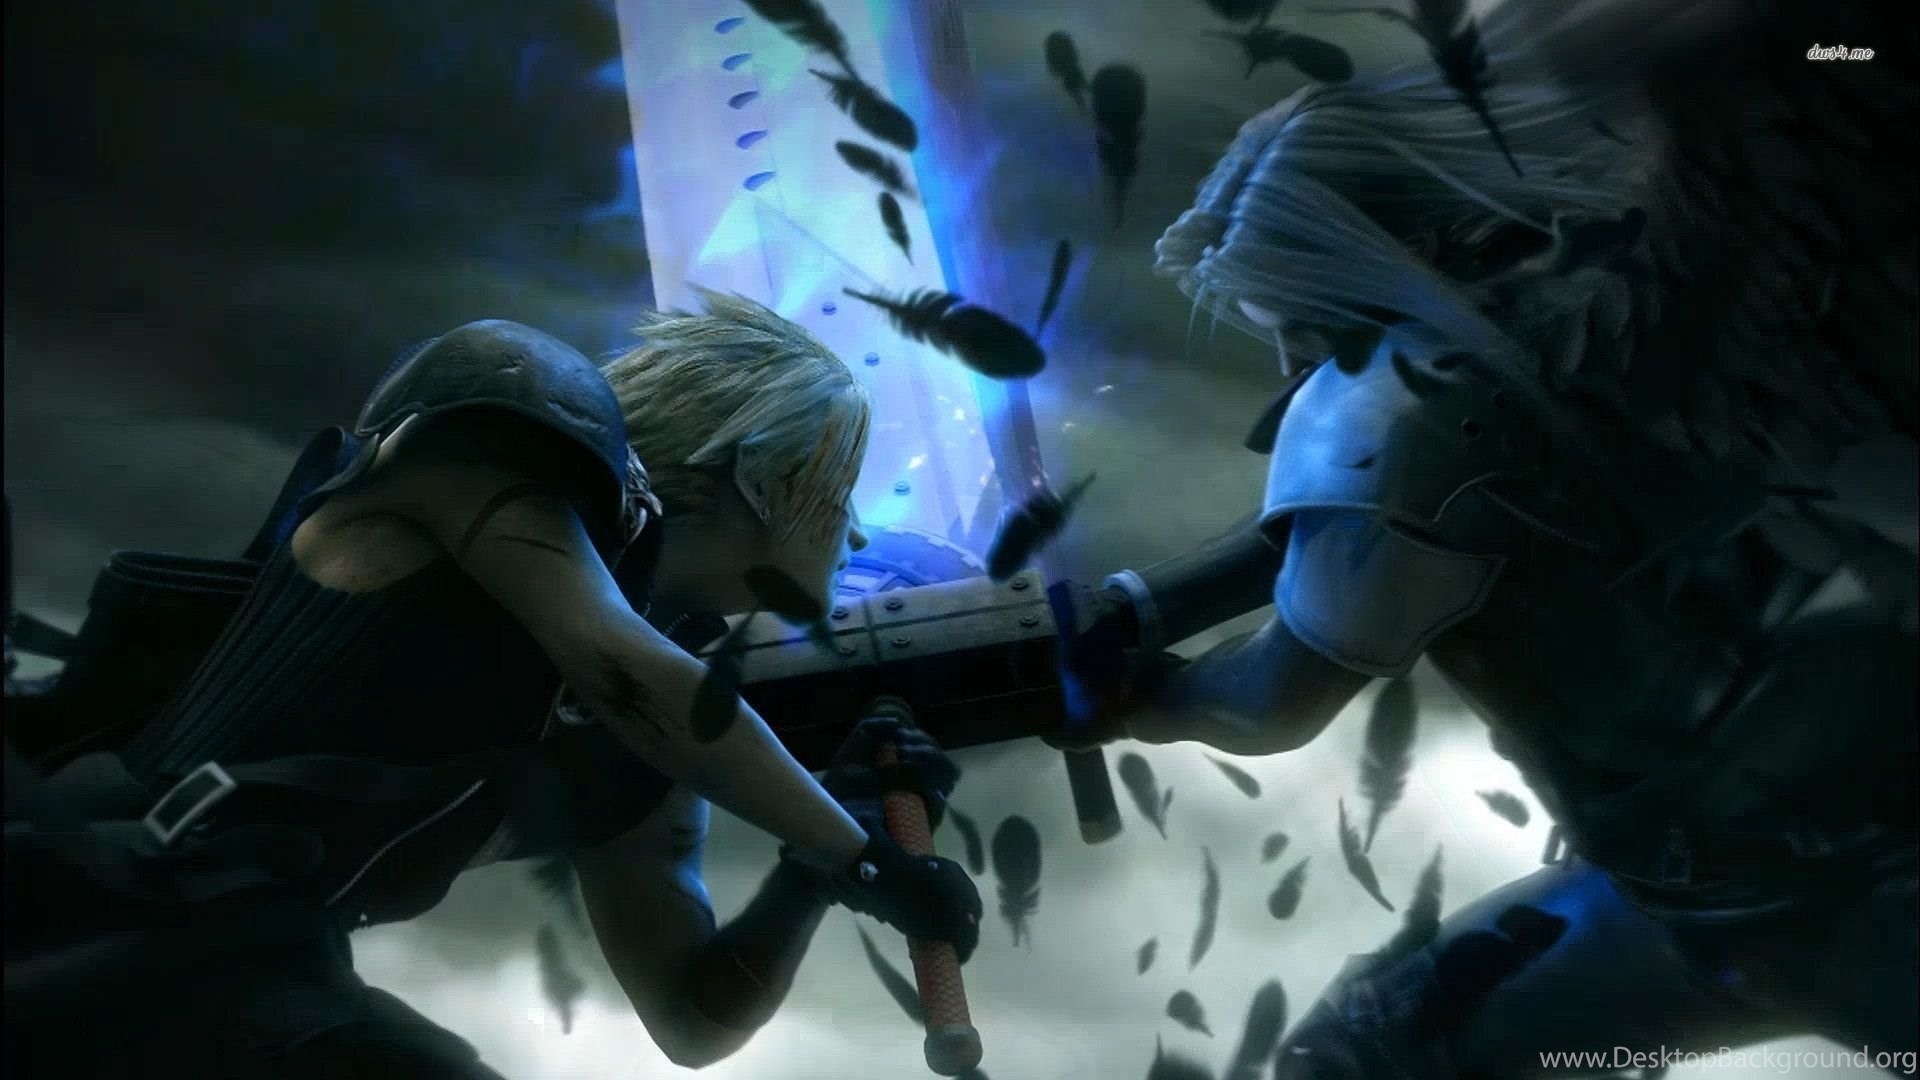 Hd Final Fantasy Vii Wallpapers Desktop Background